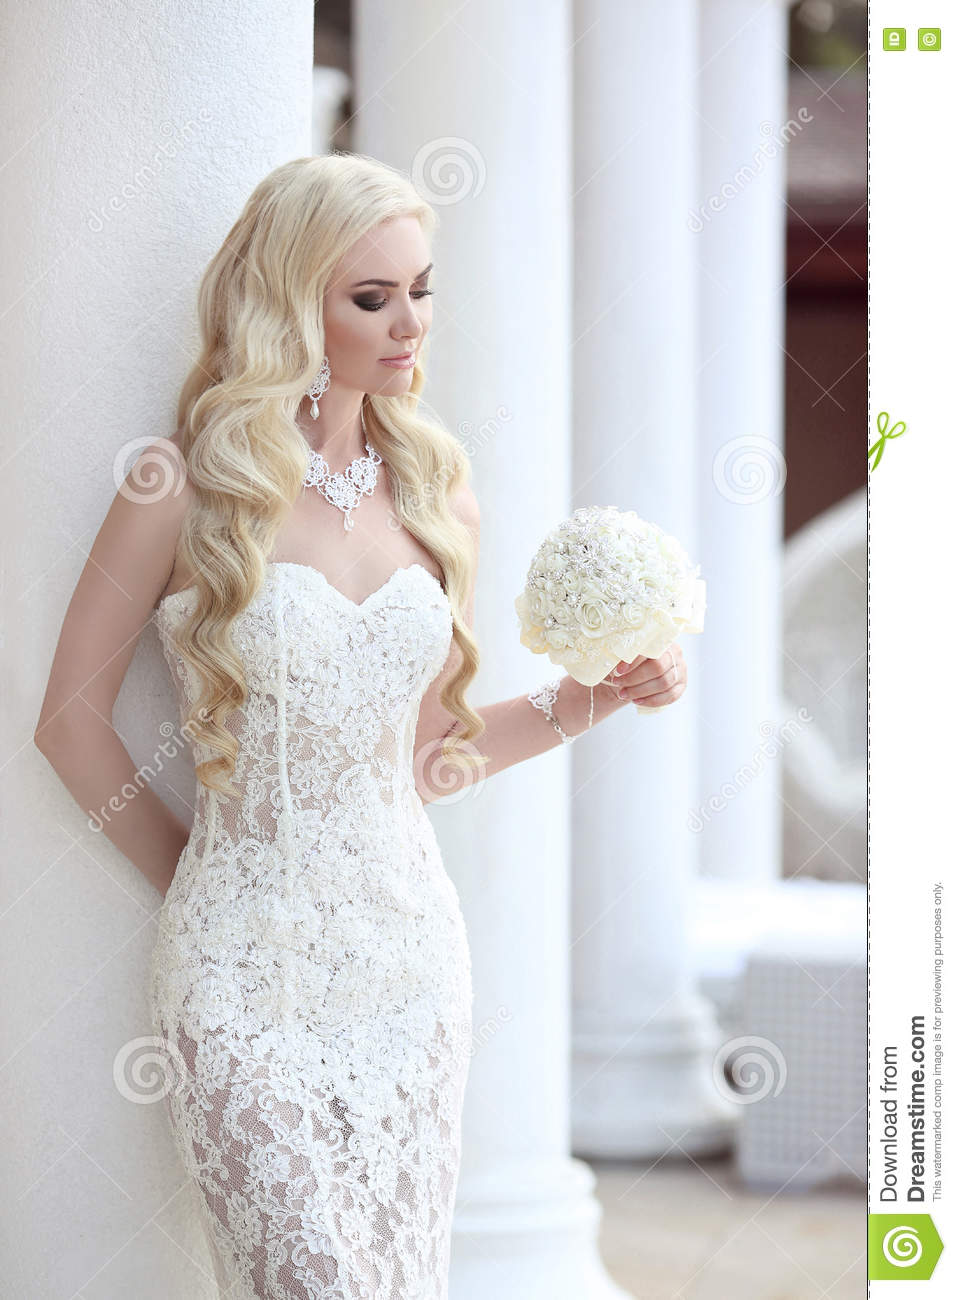 Beautiful Bride Portrait Holding Wedding Bouquet Posing In Lace